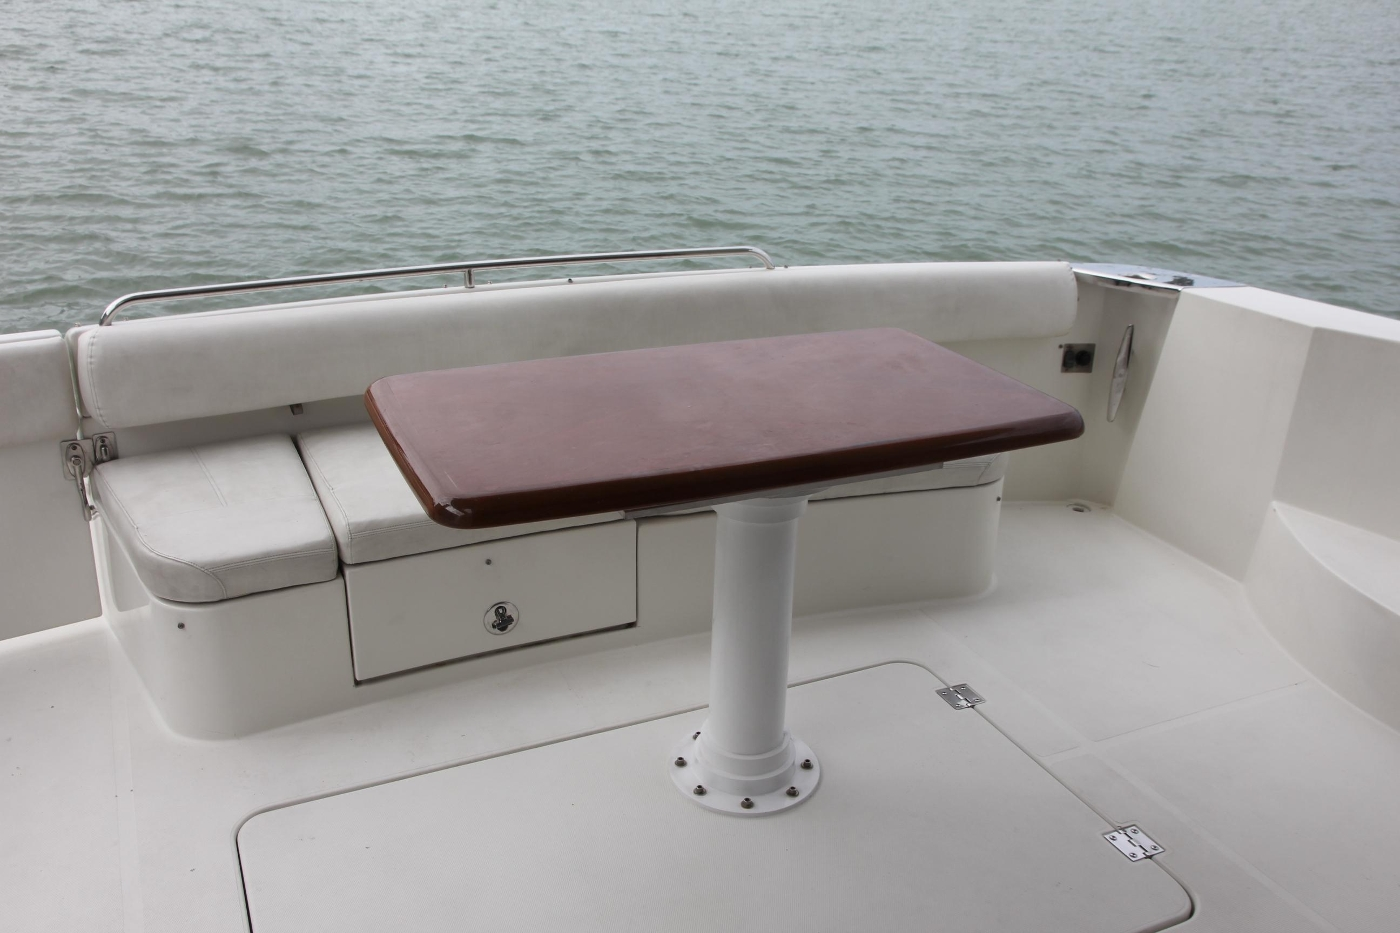 2005 Carver 560 Voyager Pilothouse, Transom Seating and Table